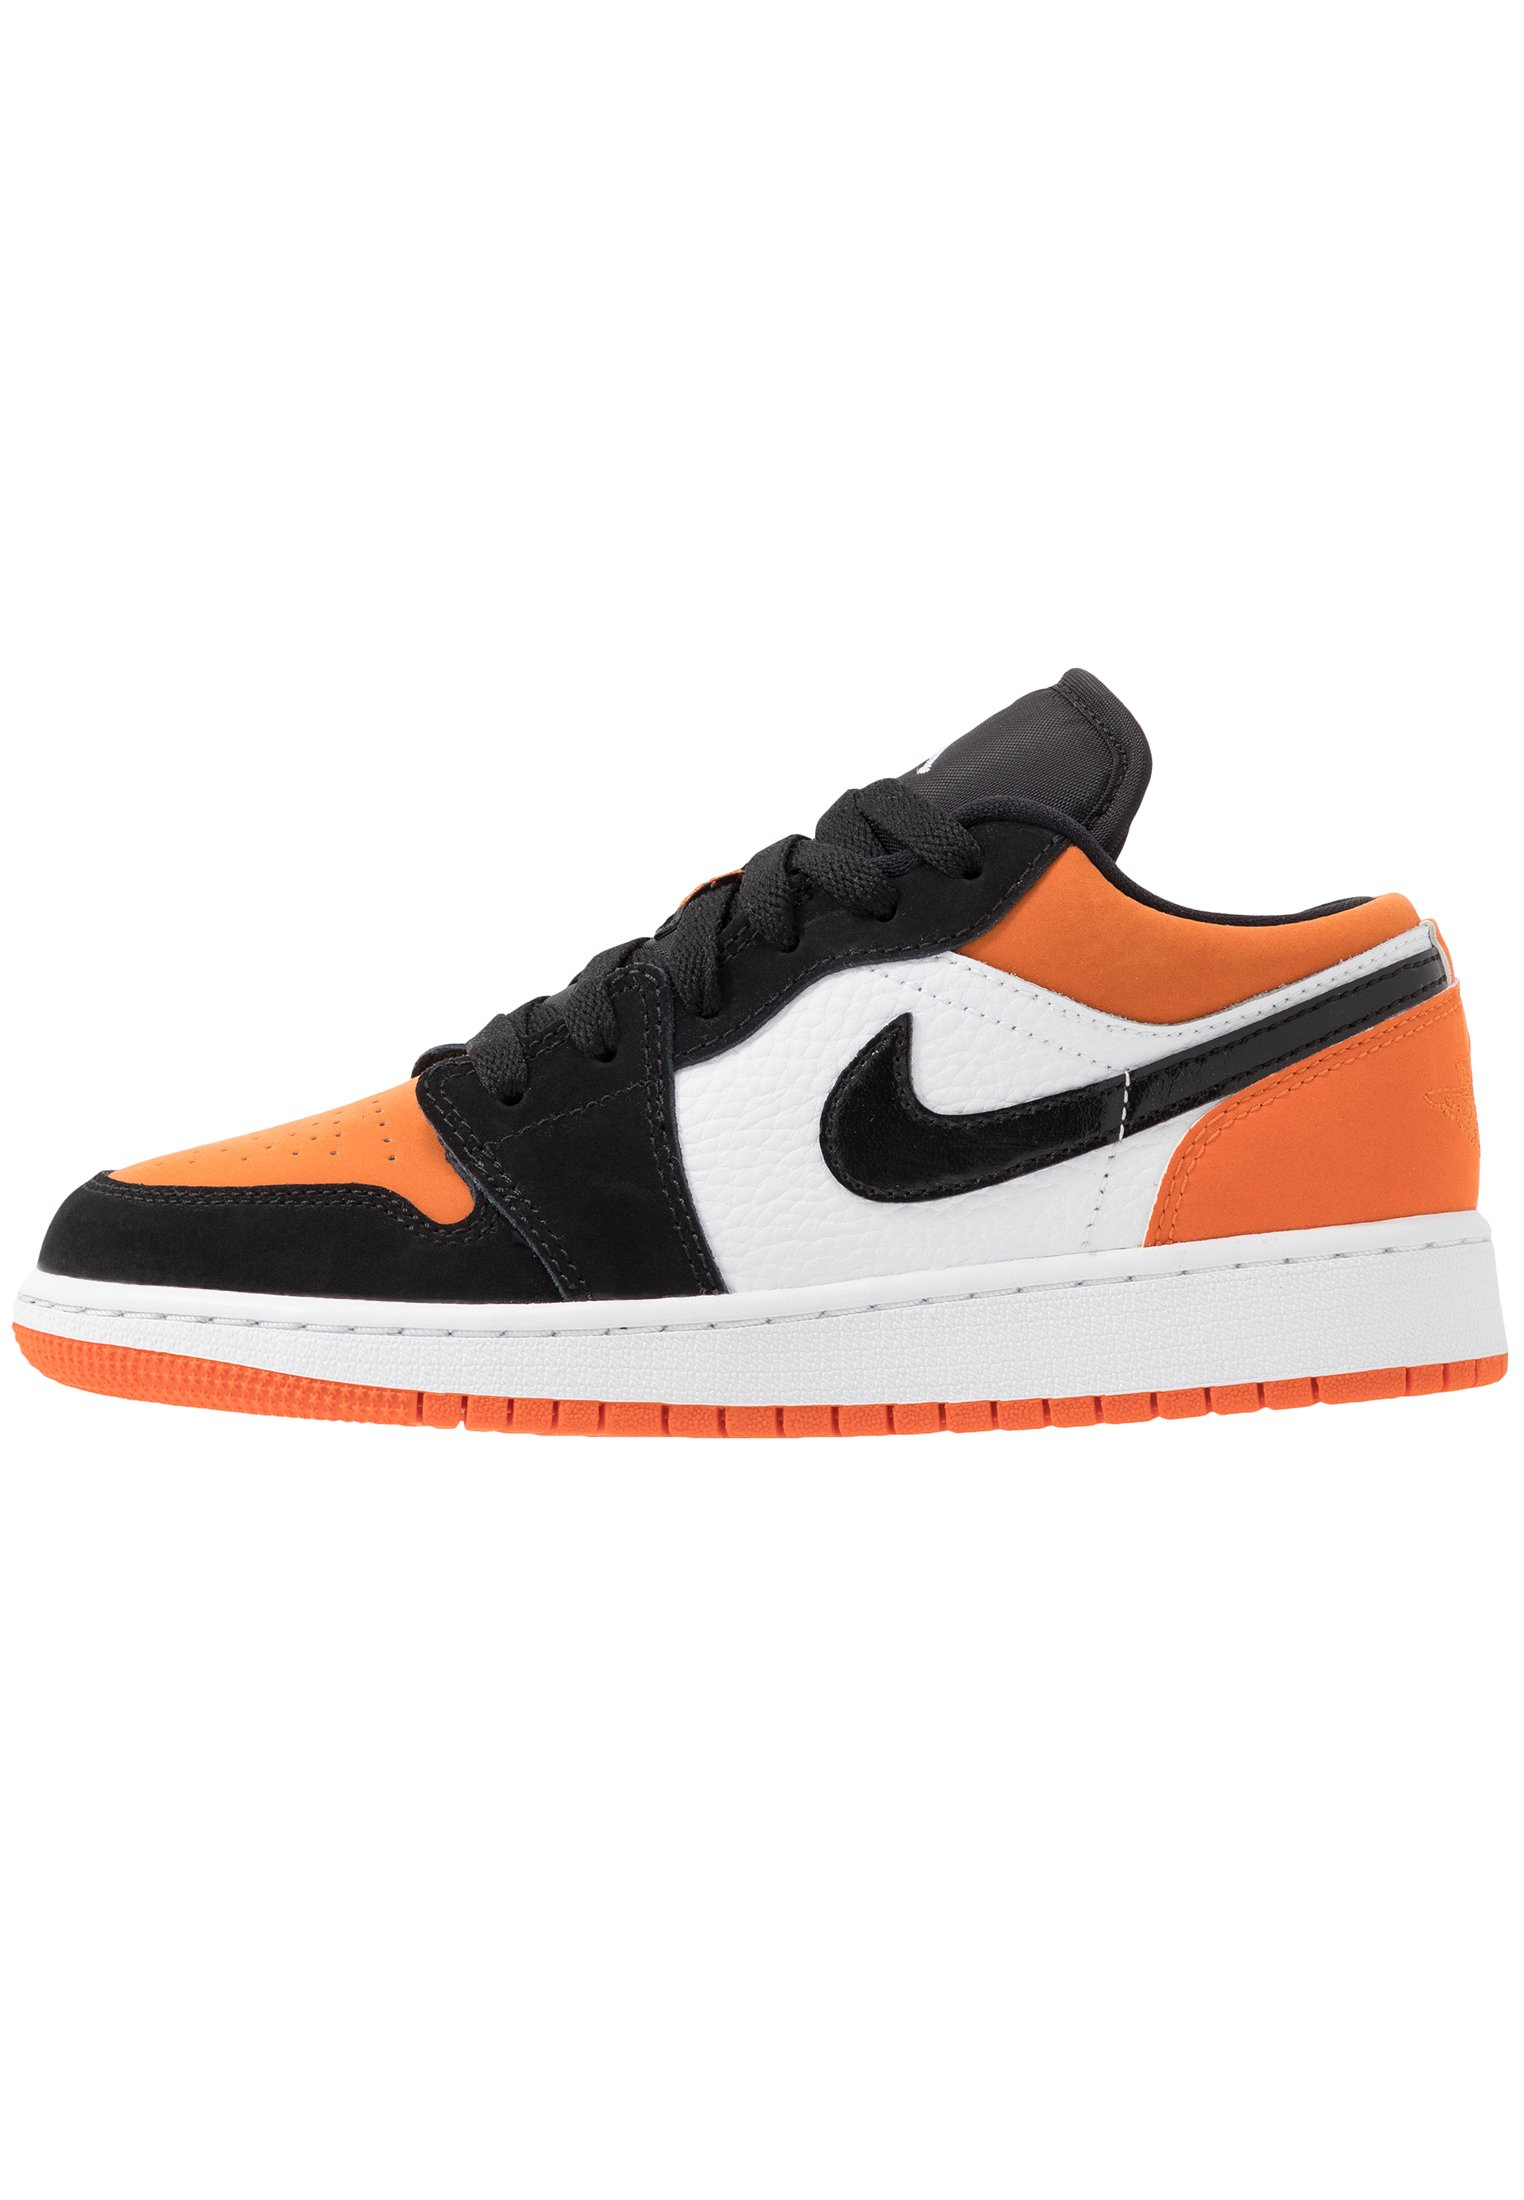 nike air jordan 1 low scarpe da basket uomo